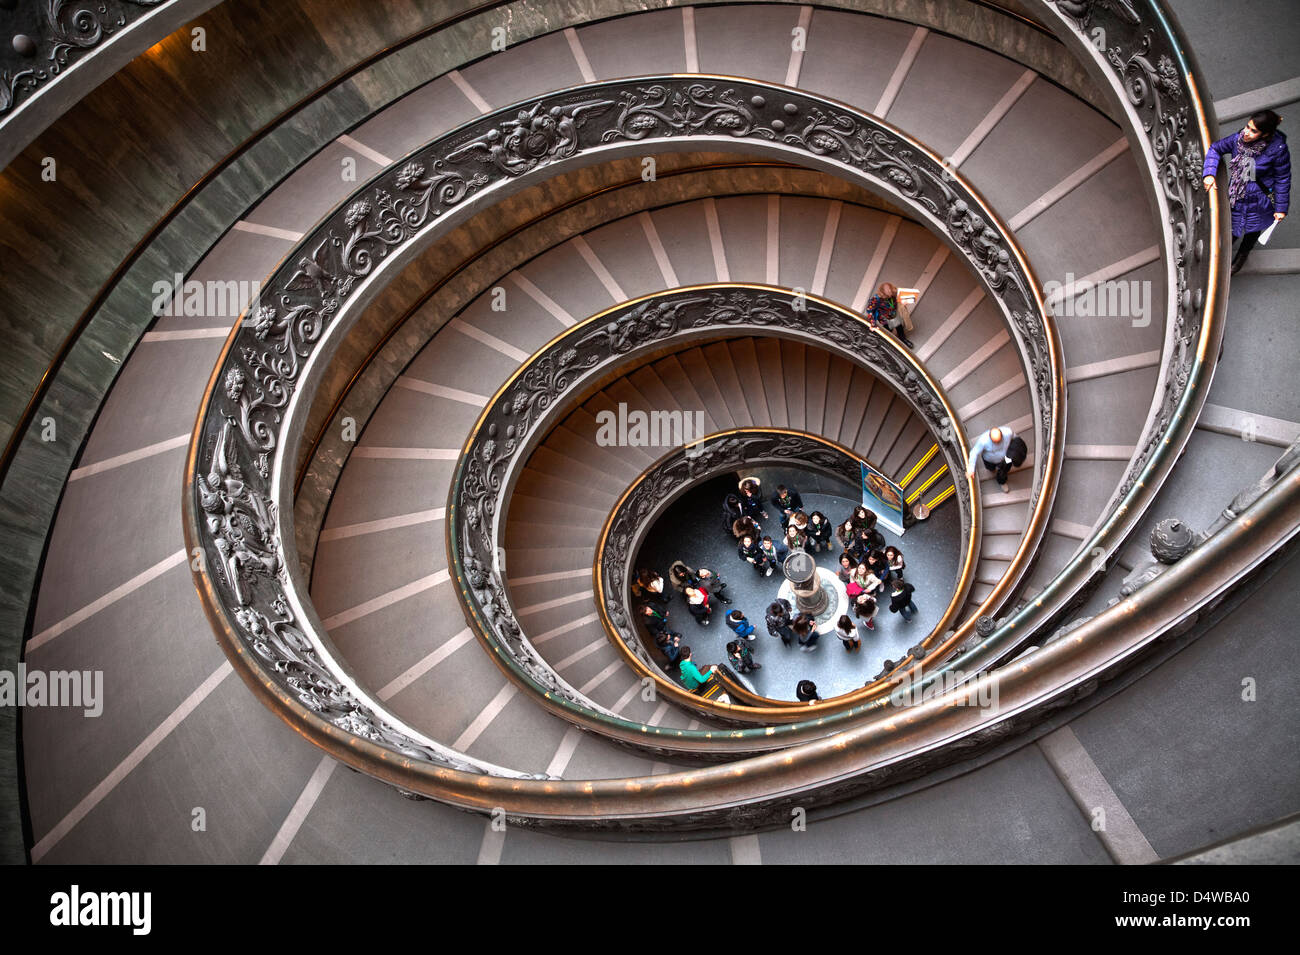 Spiral staircase exit to the Vatican Museums, Rome, Italy - Stock Image